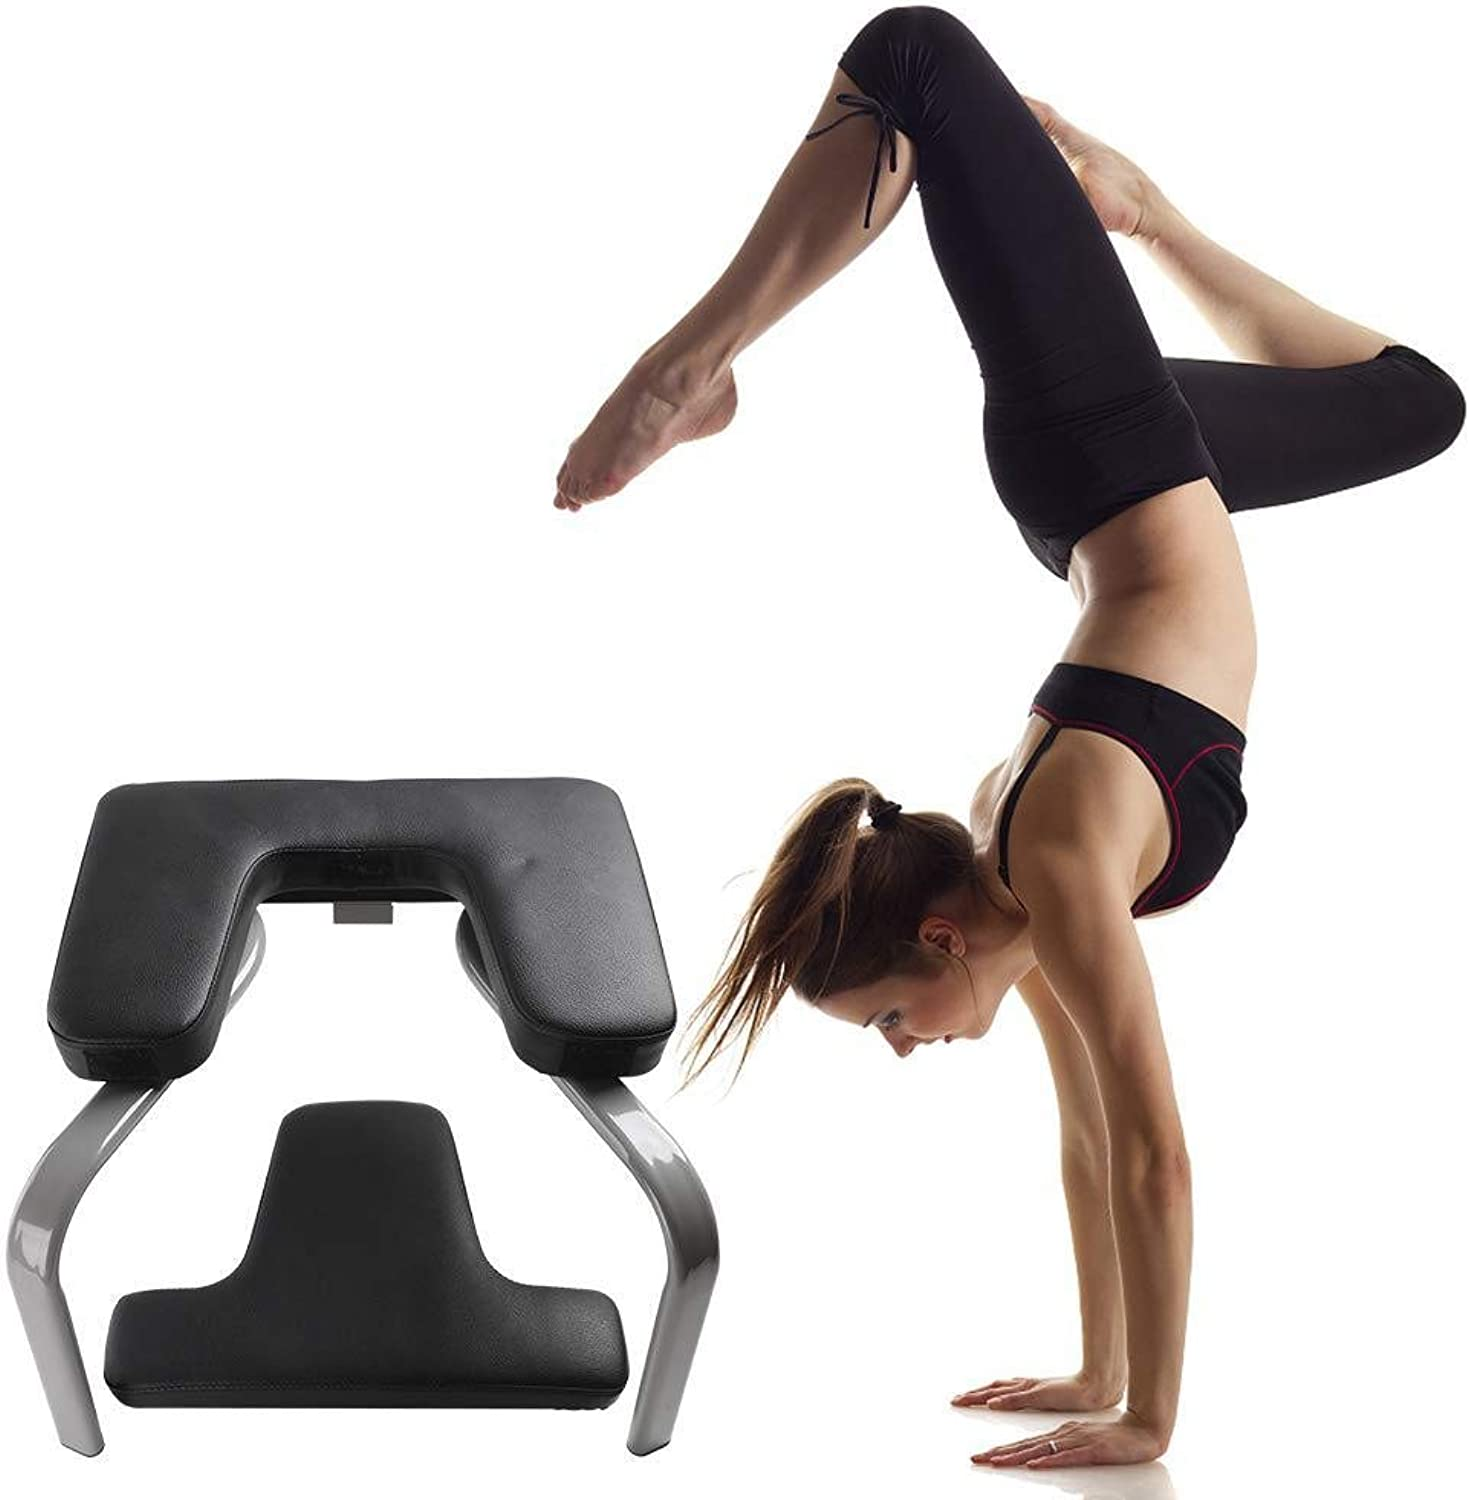 Yoga Headstand Chair, Yoga Aids Workout Chair, Fitness Studio Inversion Stool for Perfect Body, Relieve Fatigue and Build Up Body